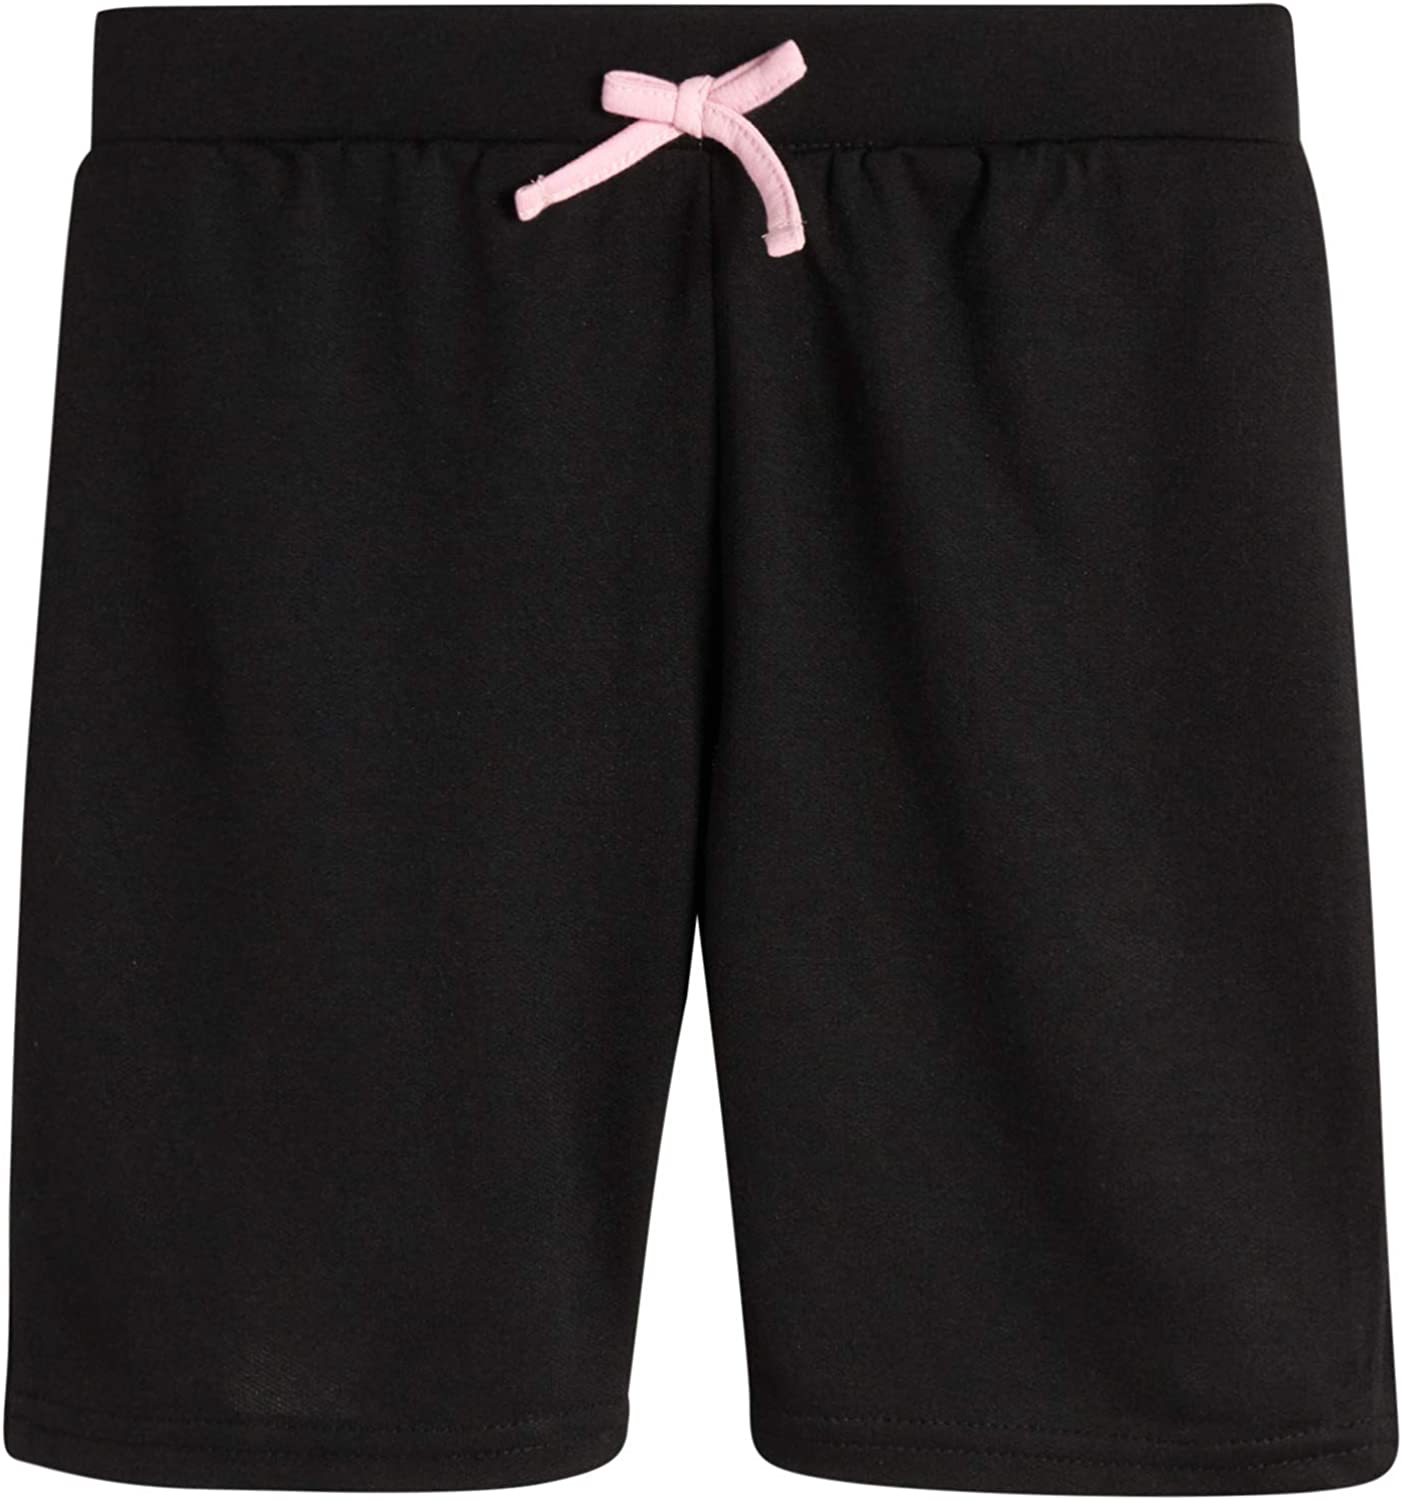 2-Pack dELiAs Girls Super Soft French Terry Bermuda Shorts